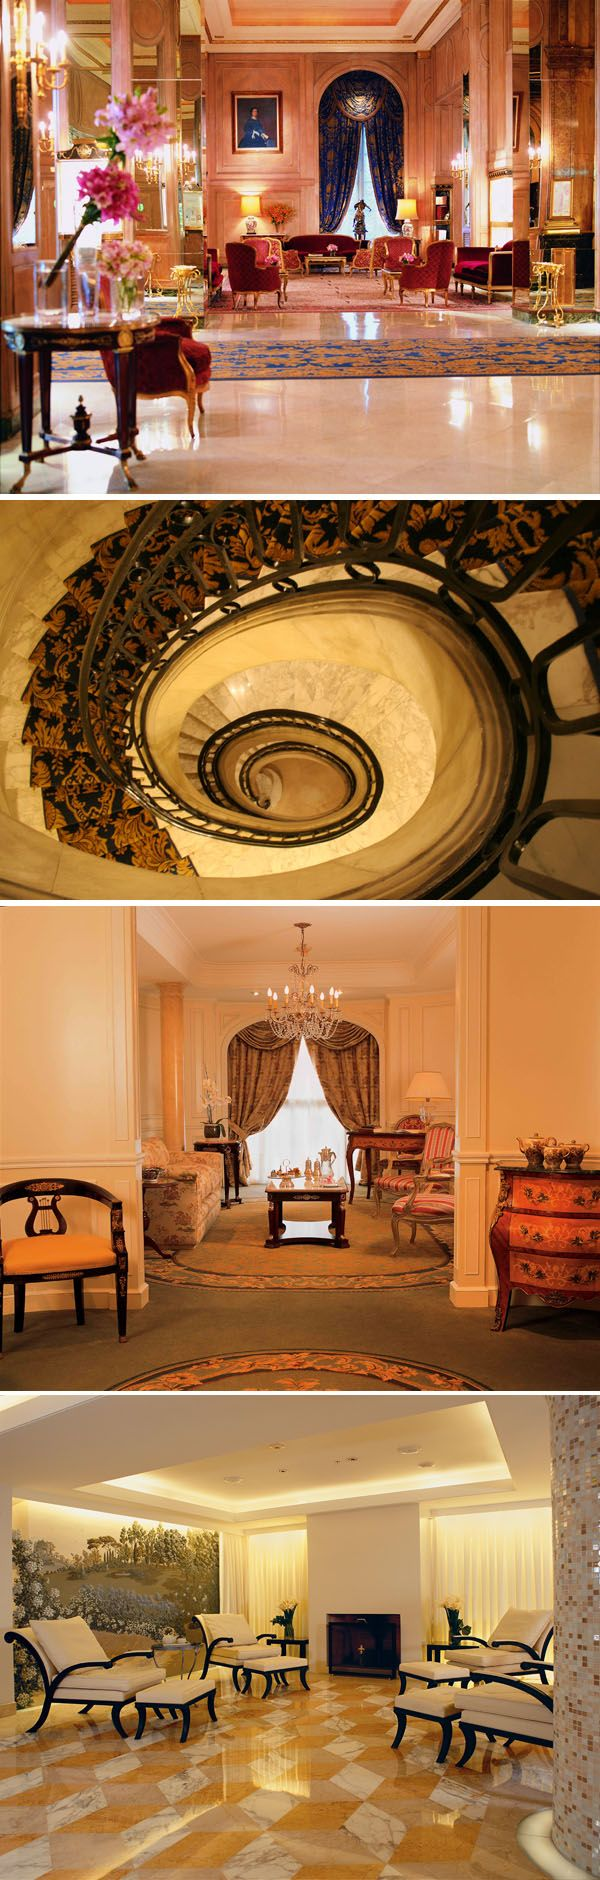 Alvear Palace Hotel Buenos Aires. The Leading Hotels of the World.